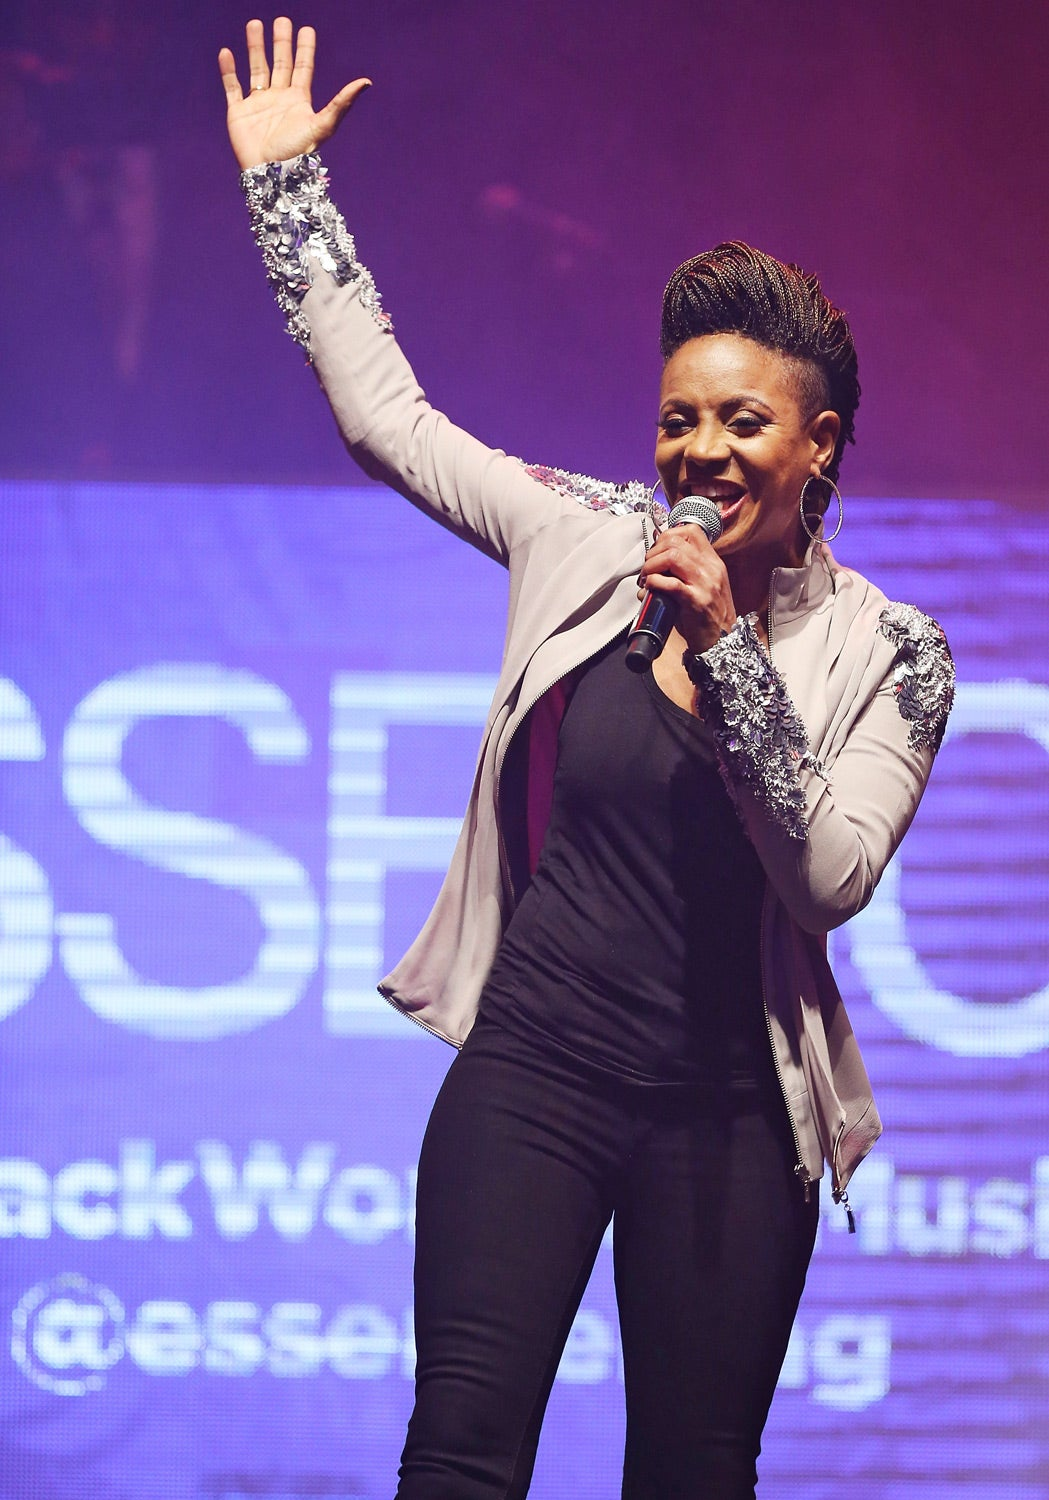 MC Lyte to Host First Retreat for Hip Hop Sisters Foundation